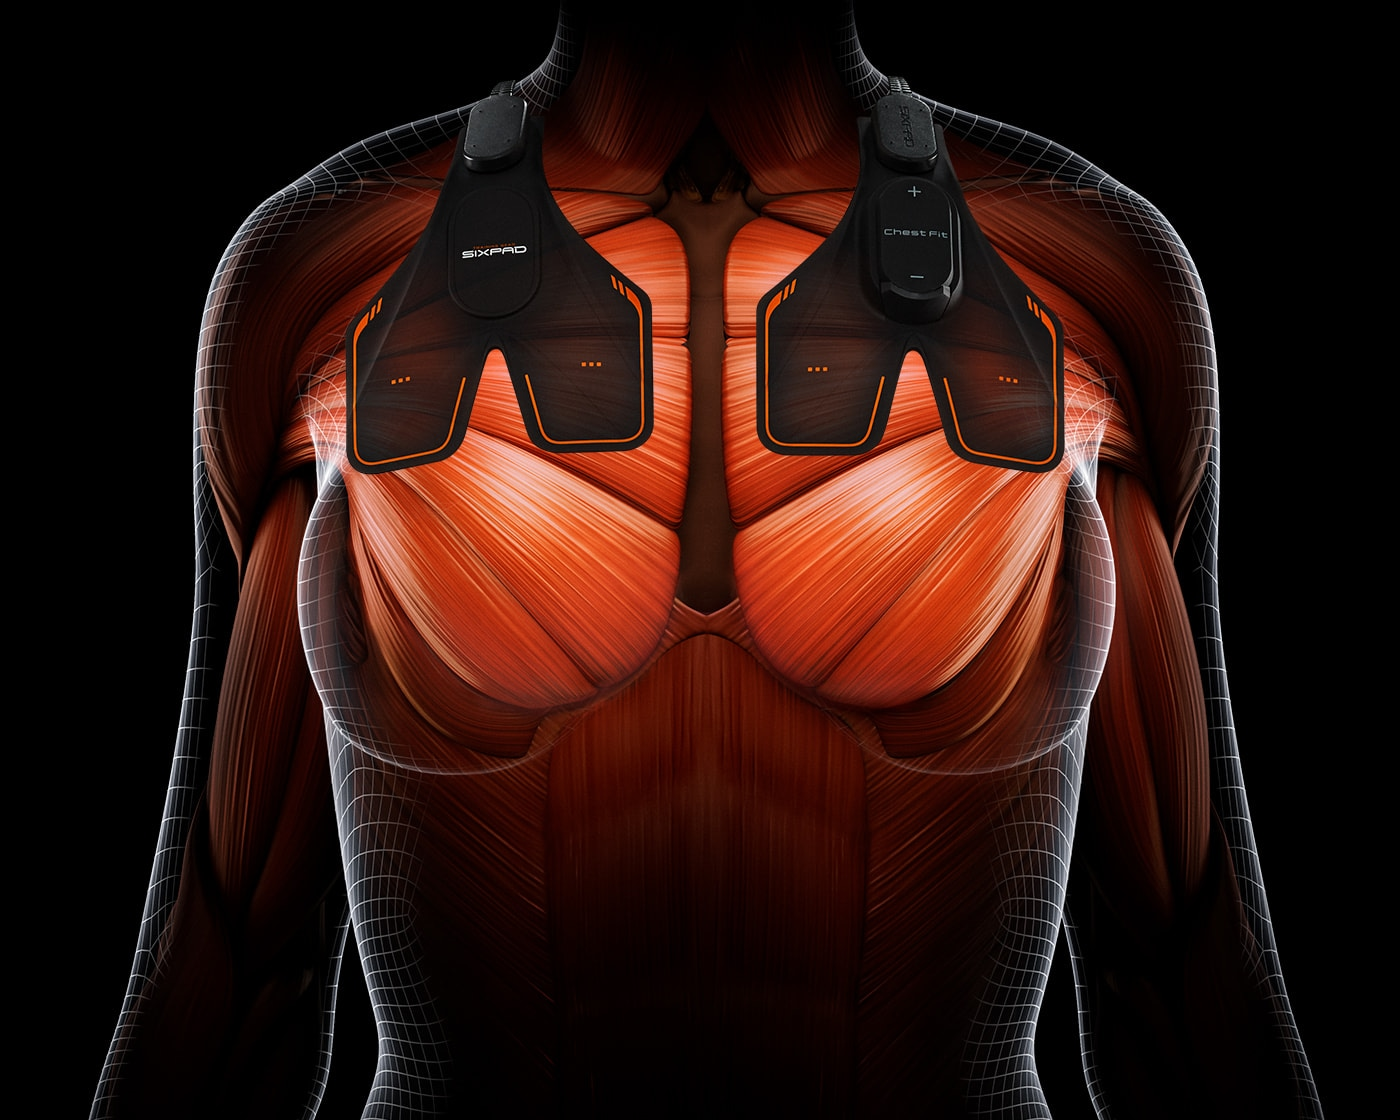 Large Pectoral Muscle A muscle that lifts the female bust and prevents it from dropping. Muscles that create a silhouette of a man's strong chest.